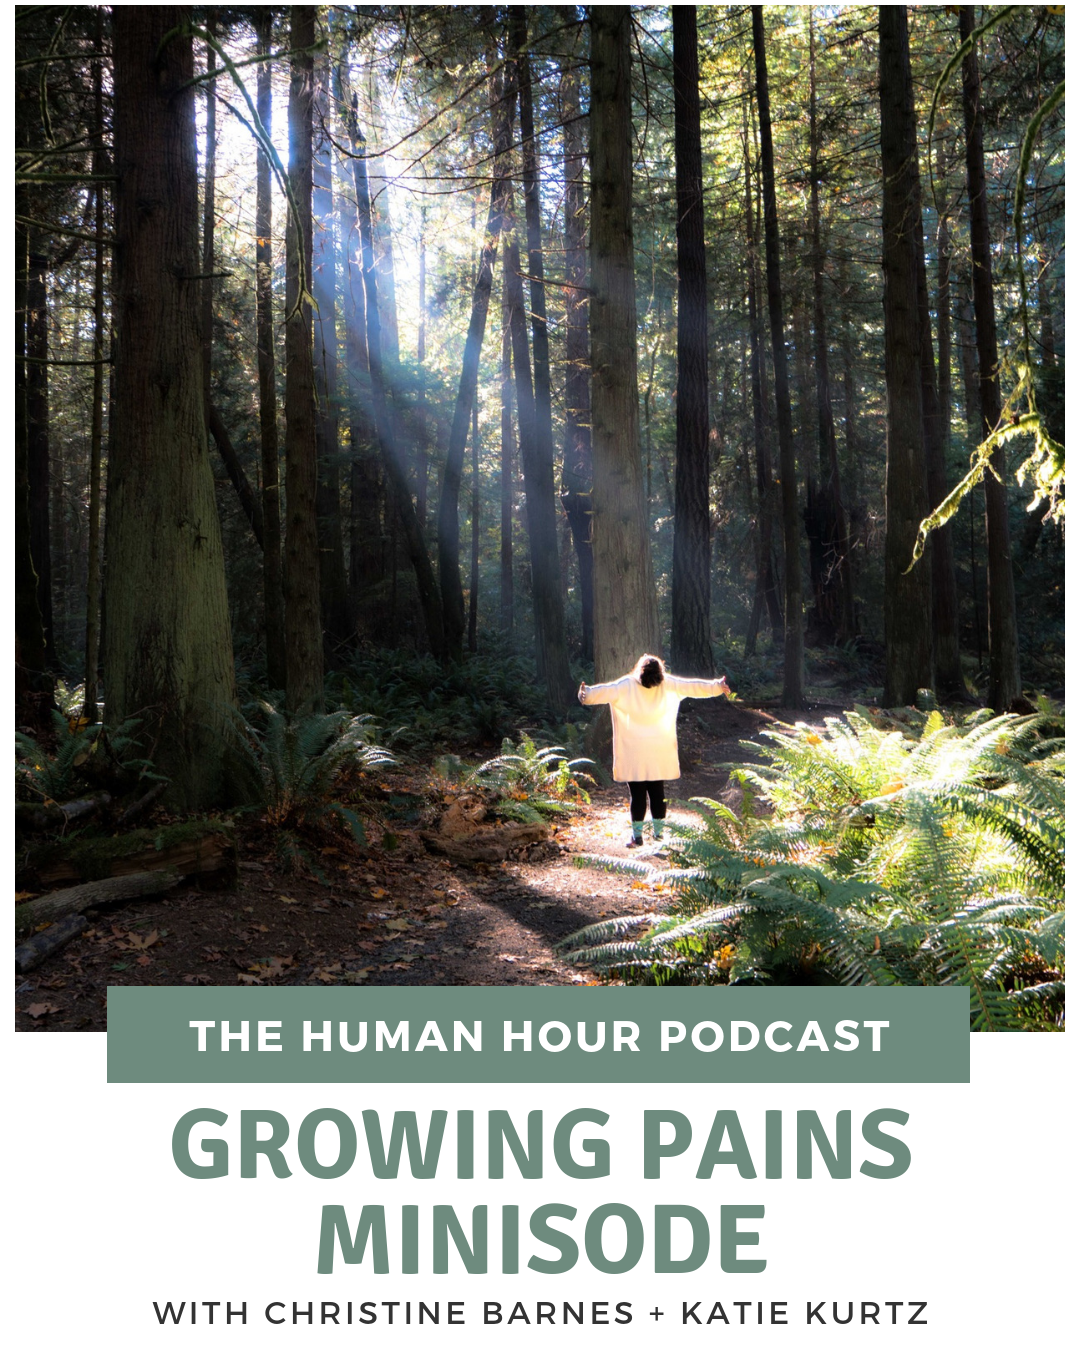 S2 E2: Growing Pains Minisode with Christine Barnes + Katie Kurtz